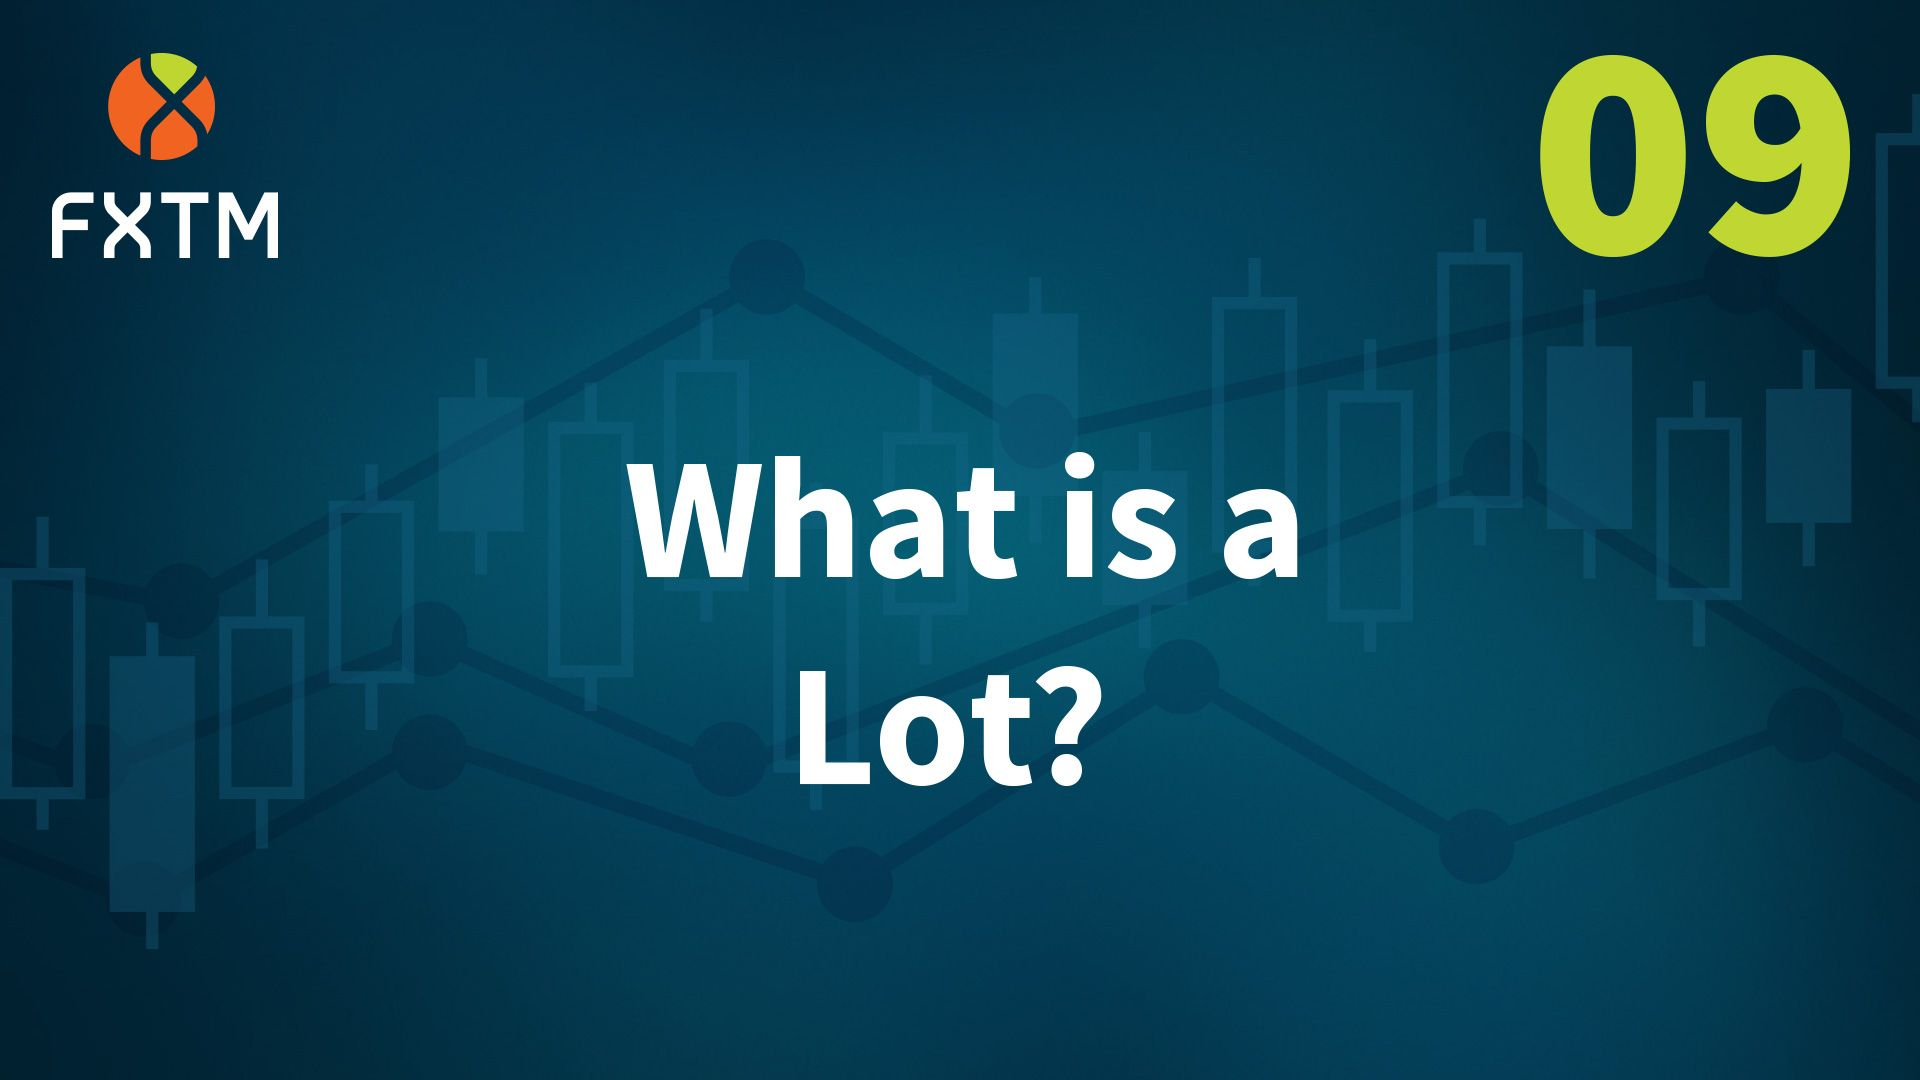 What is a Lot in Forex?